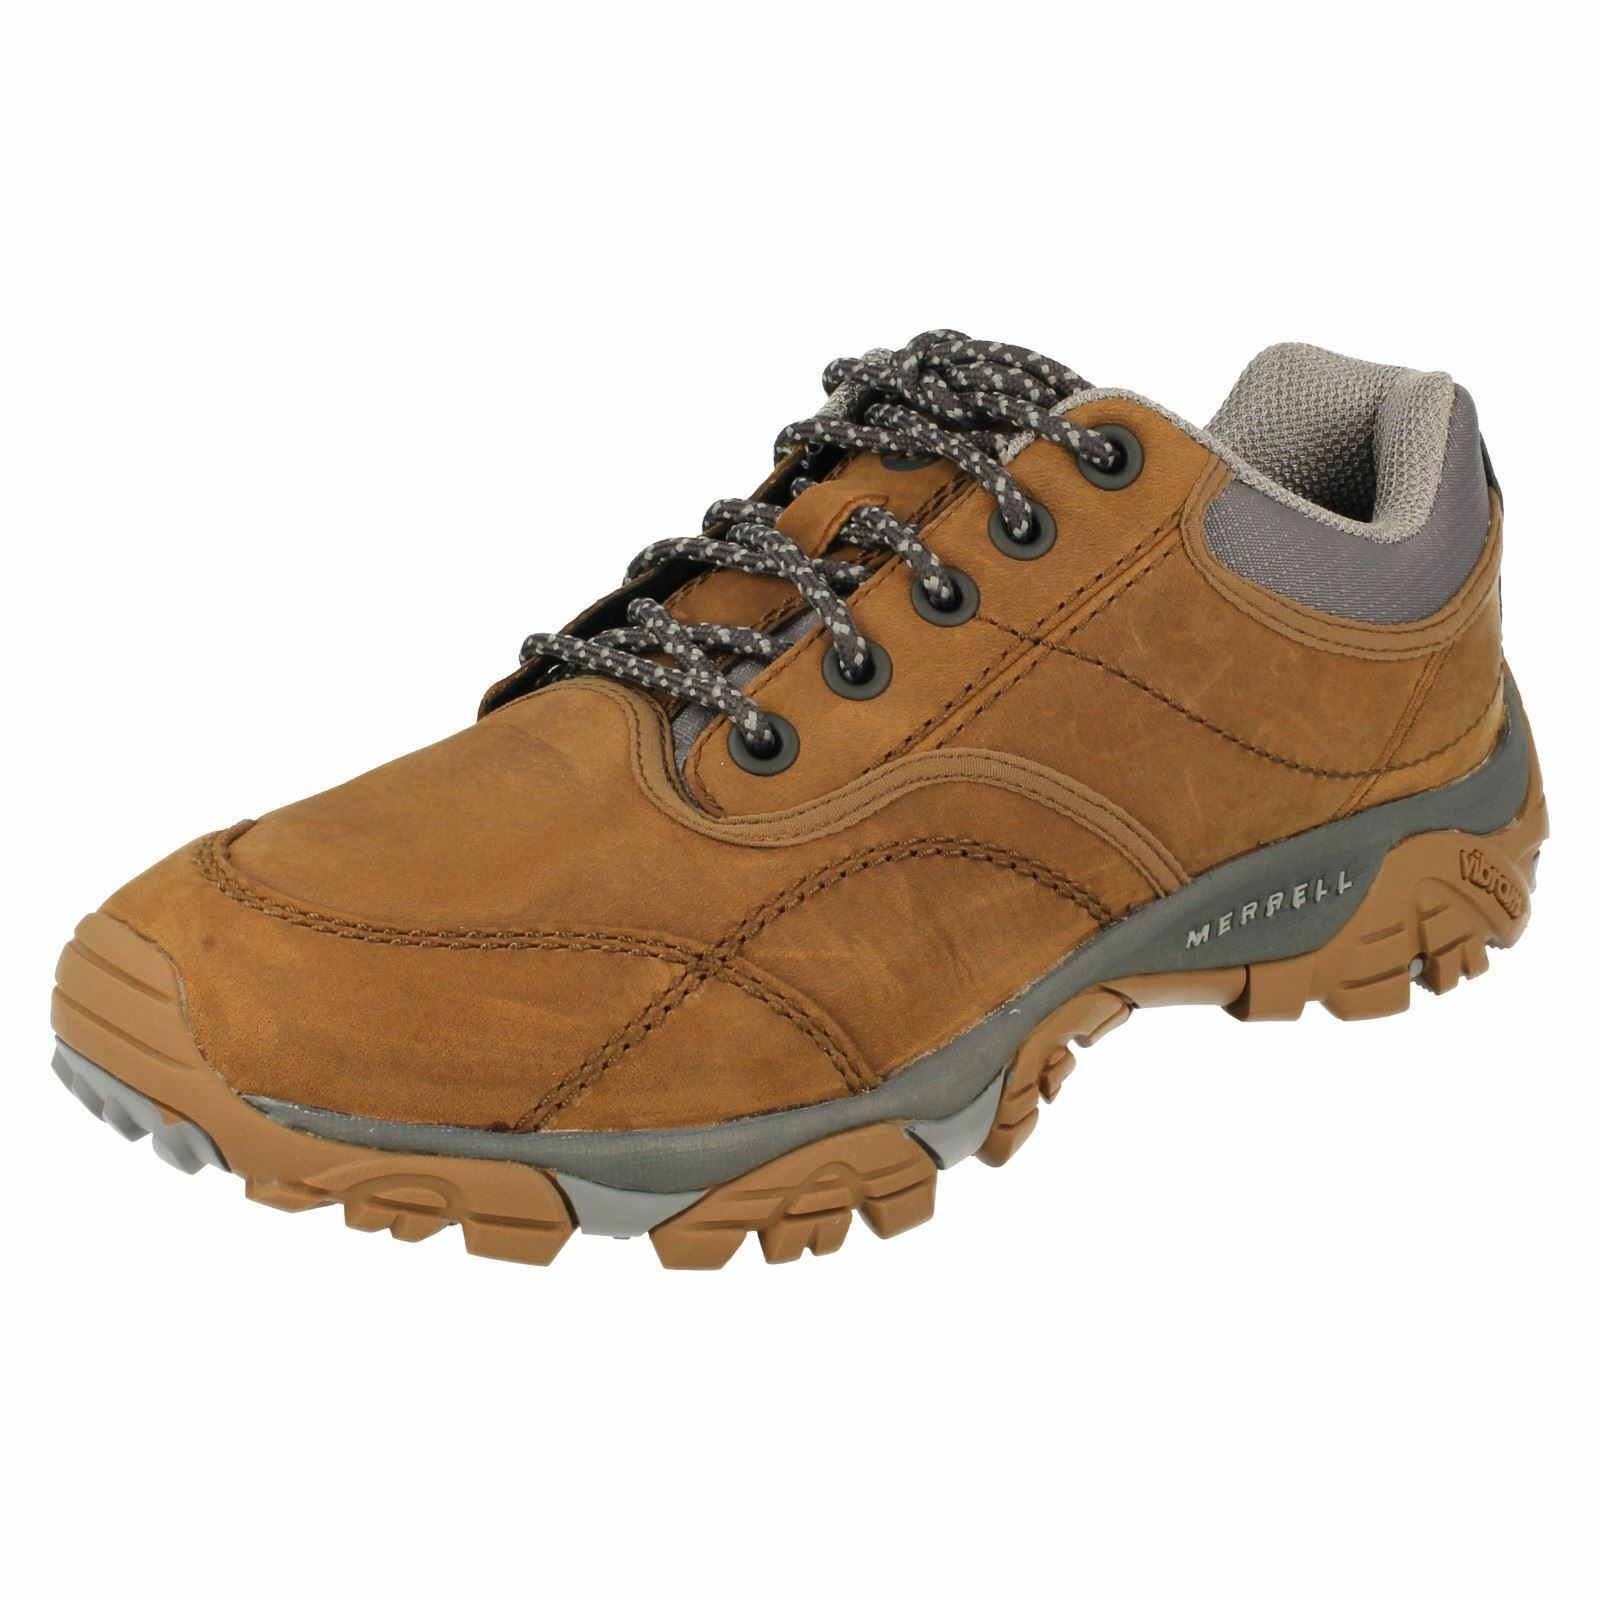 Mens Merrell Moab Rover Tan Leather Casual Walking/Hiking Shoes